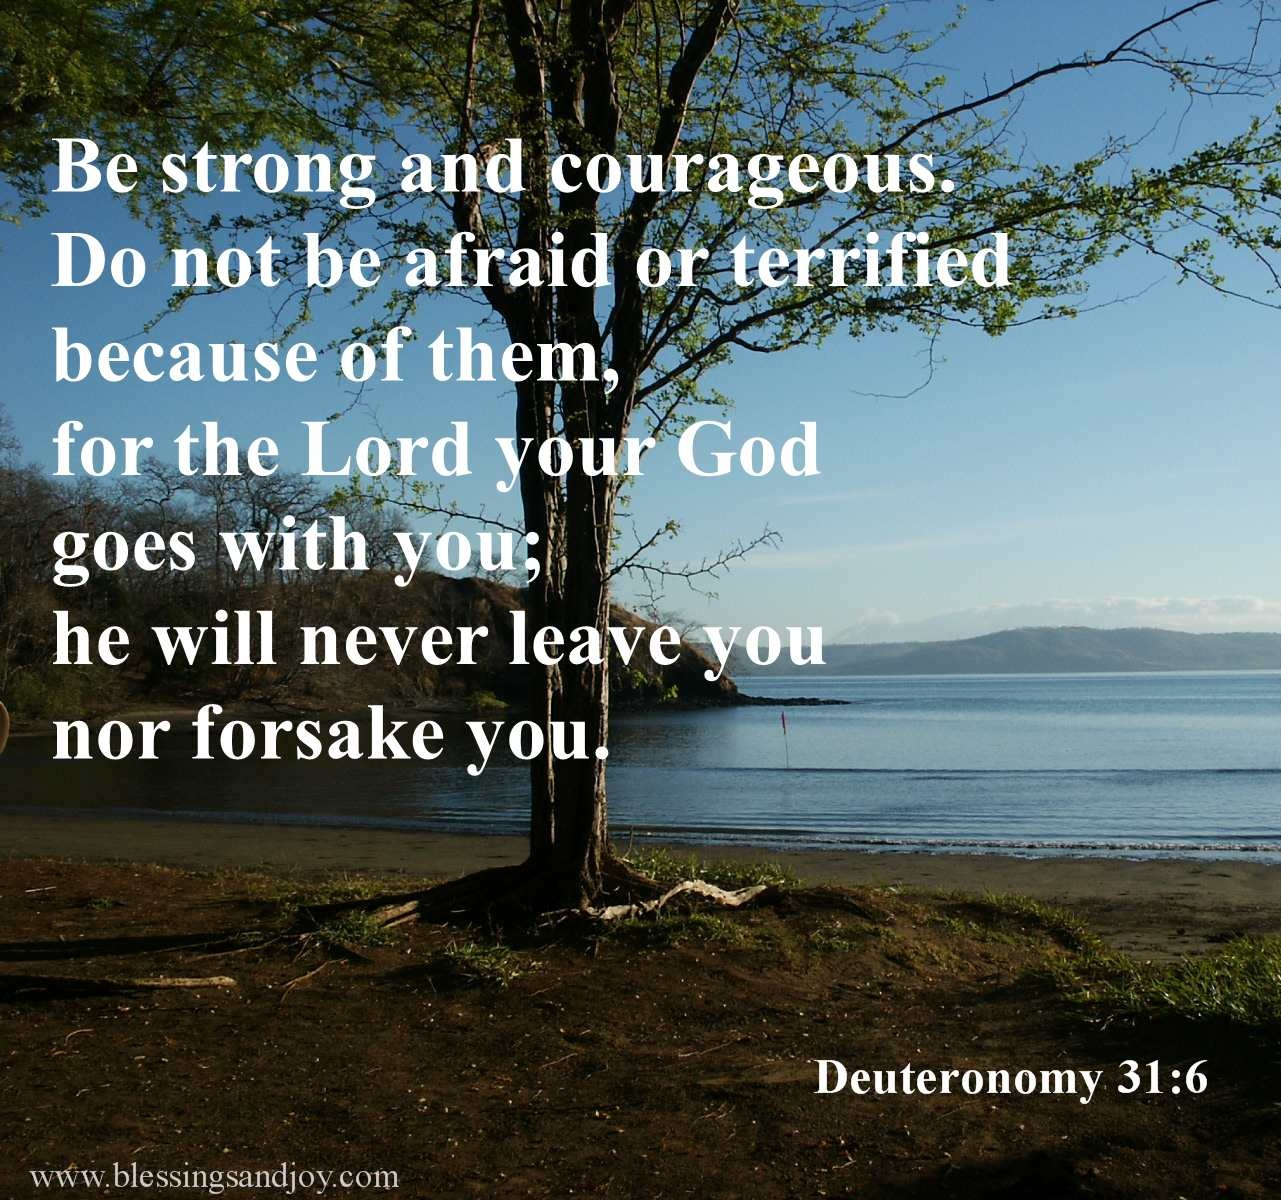 Deuteronomy_31_6_Be_strong_and_courageous-54